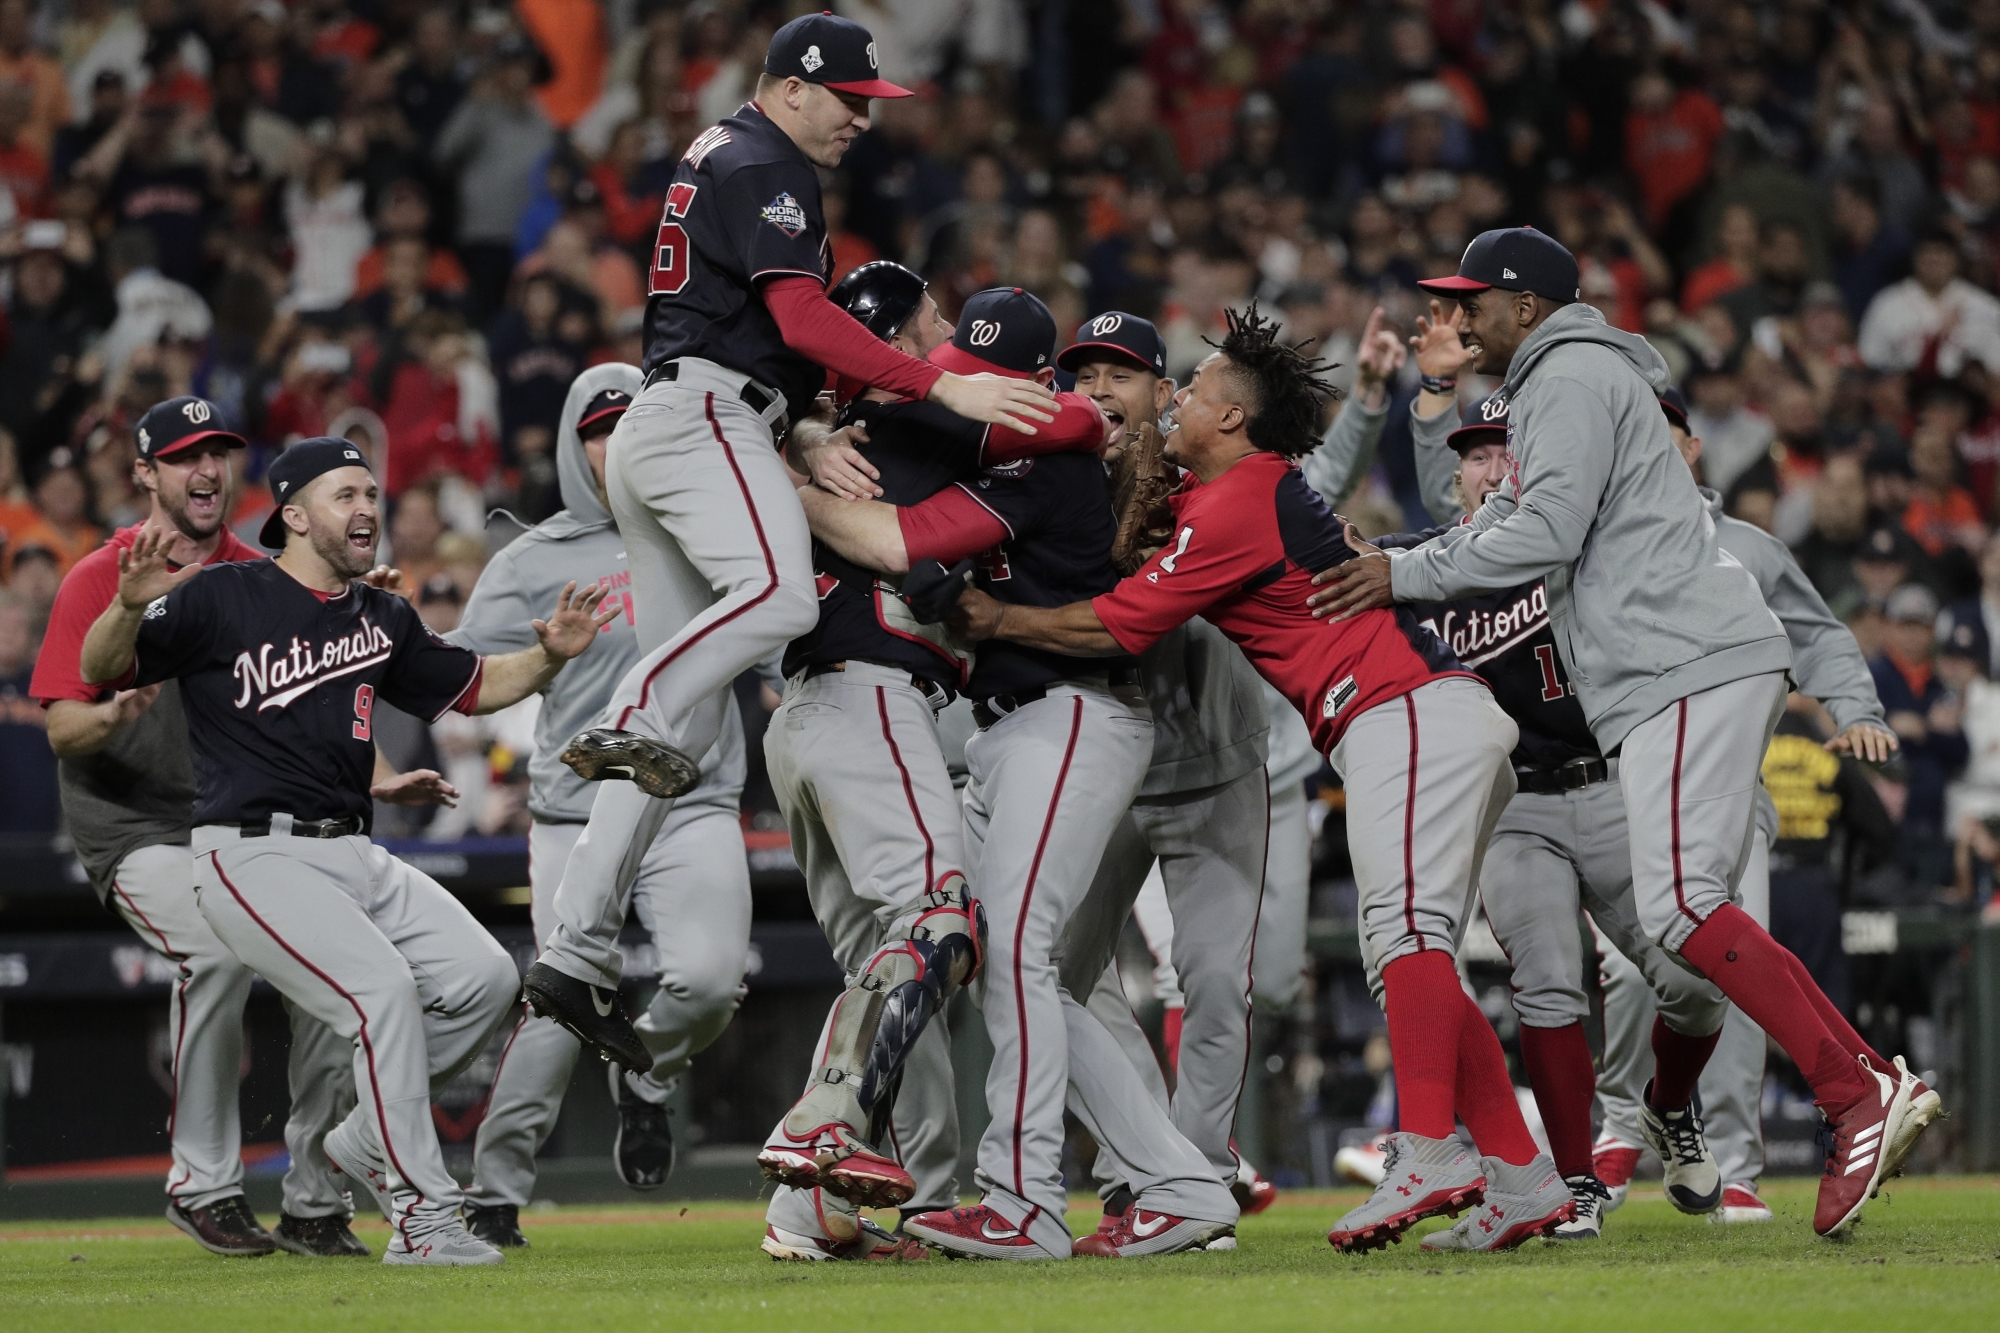 WATCH: Caps celebrate Nationals World Series Championship win | WTOP